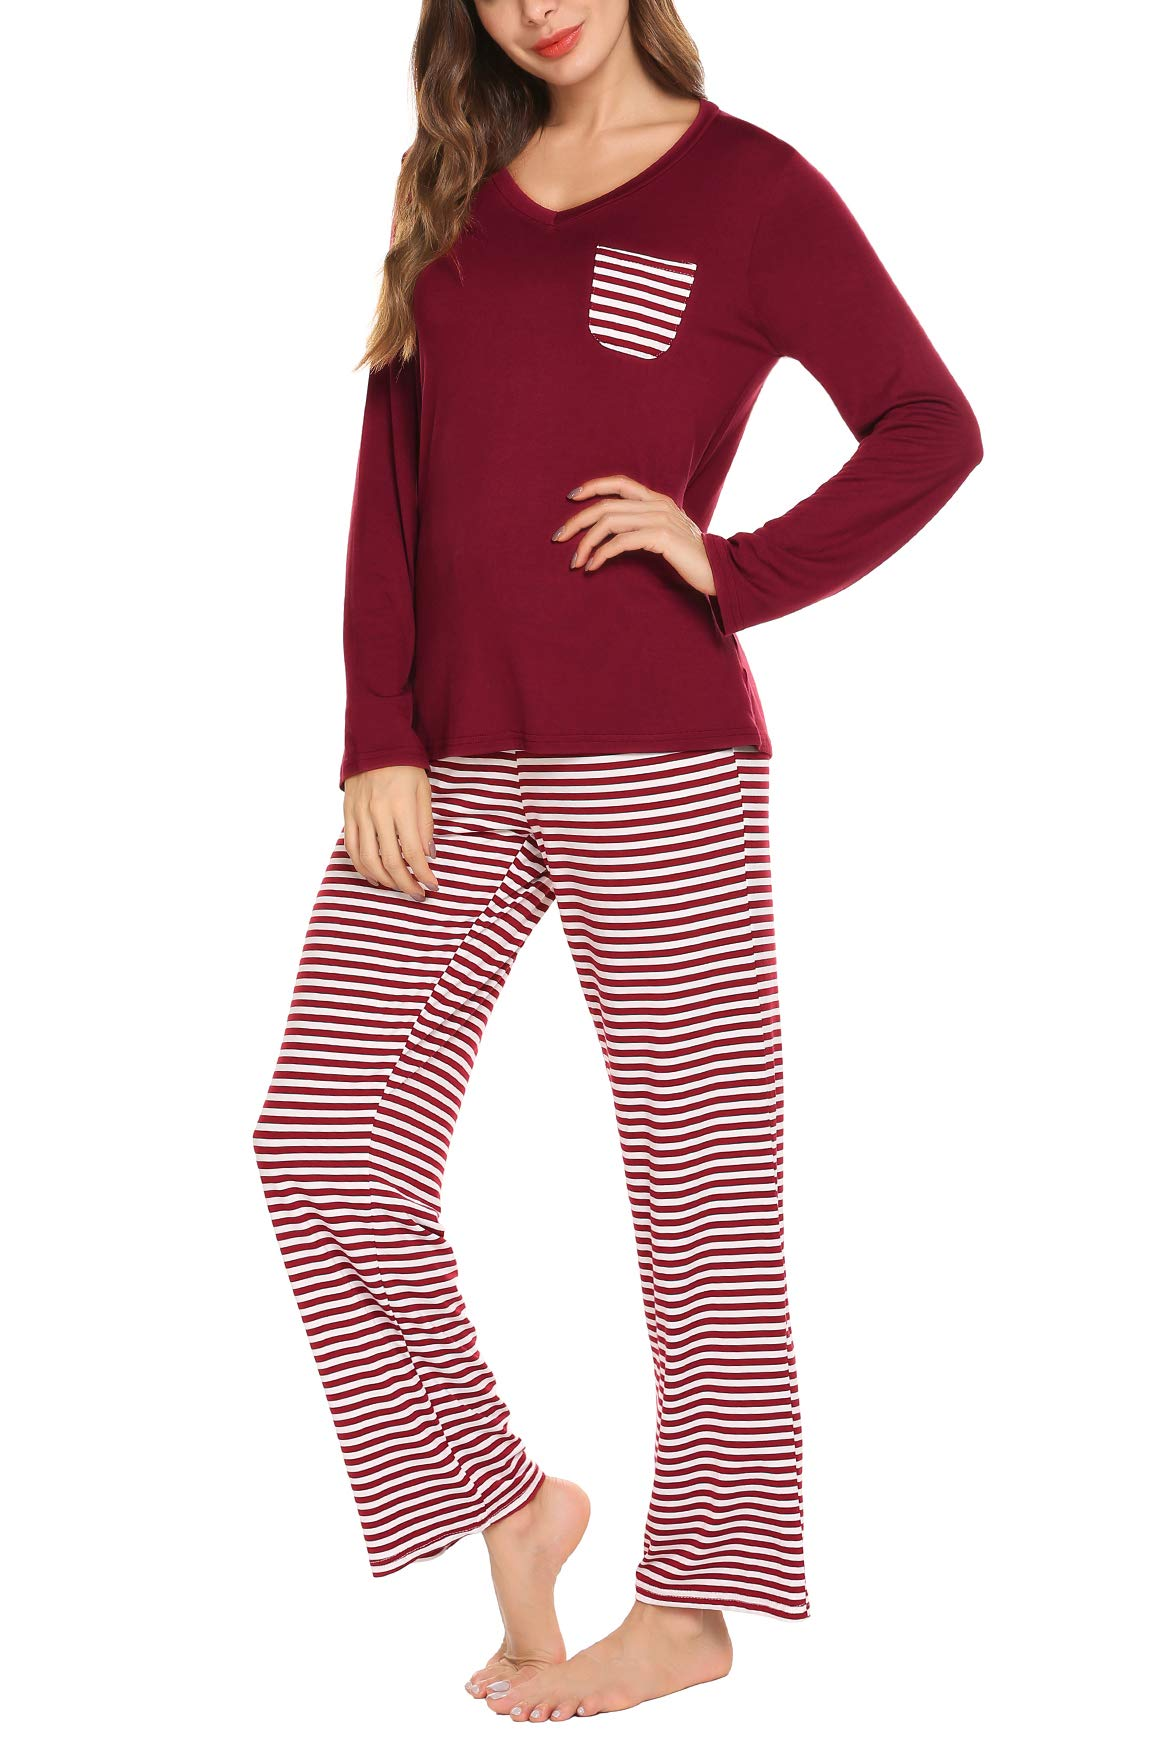 Women Breathable Casual Sleep Shirt and Ultra Soft Straight fit Pants Loungewear Two Piece Sleepwear Sets Wine Red L